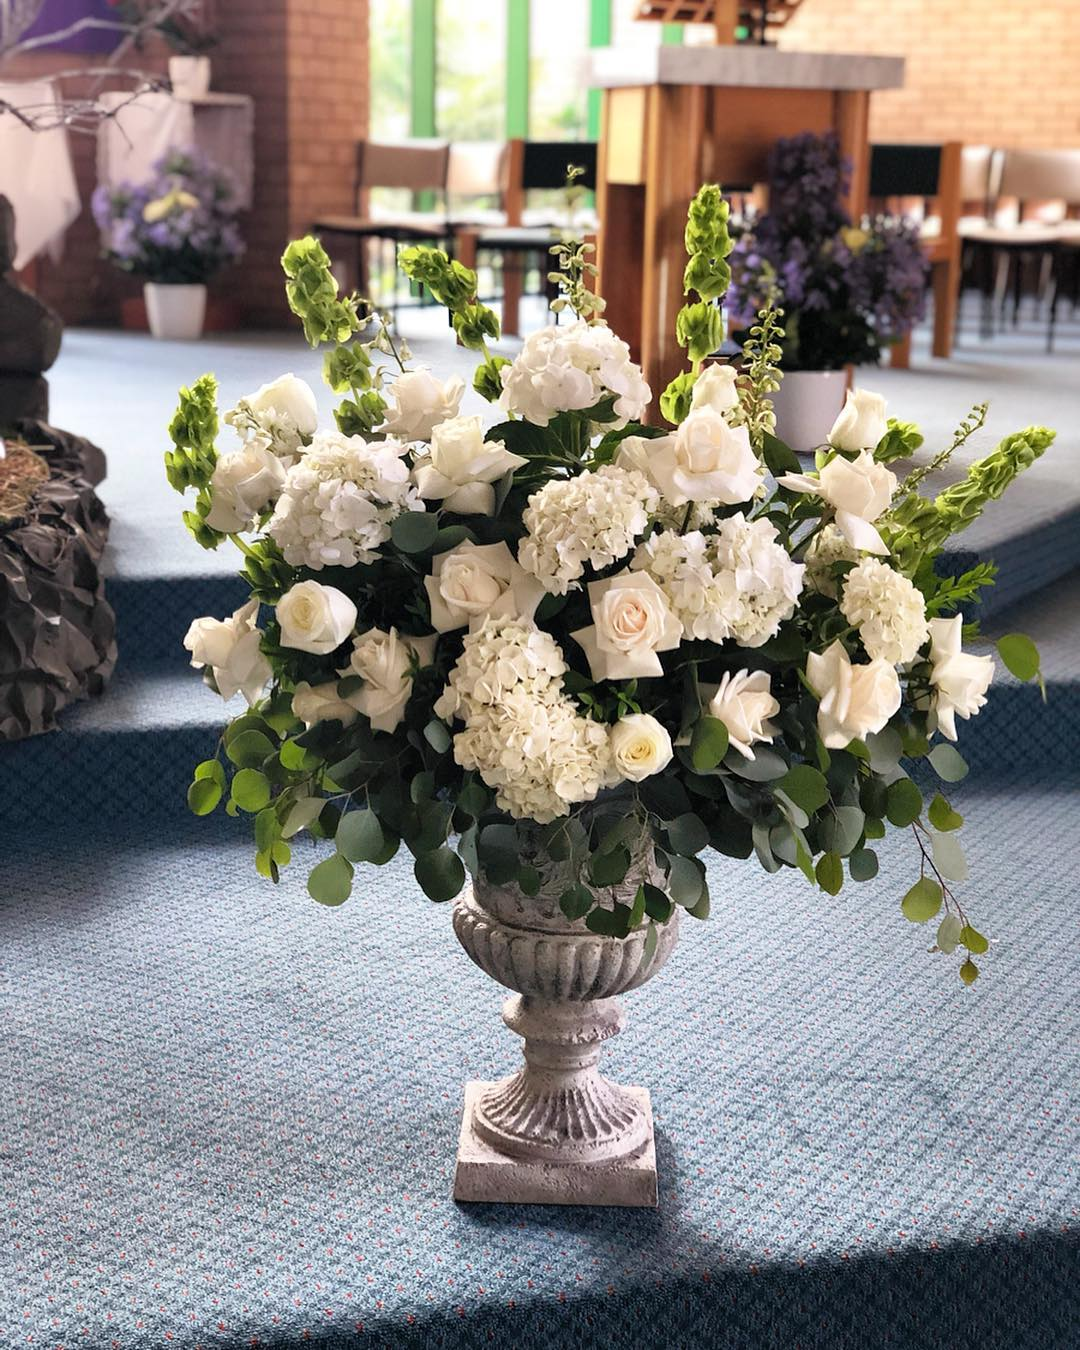 FLoral Ceremony arrangement in urn.jpg